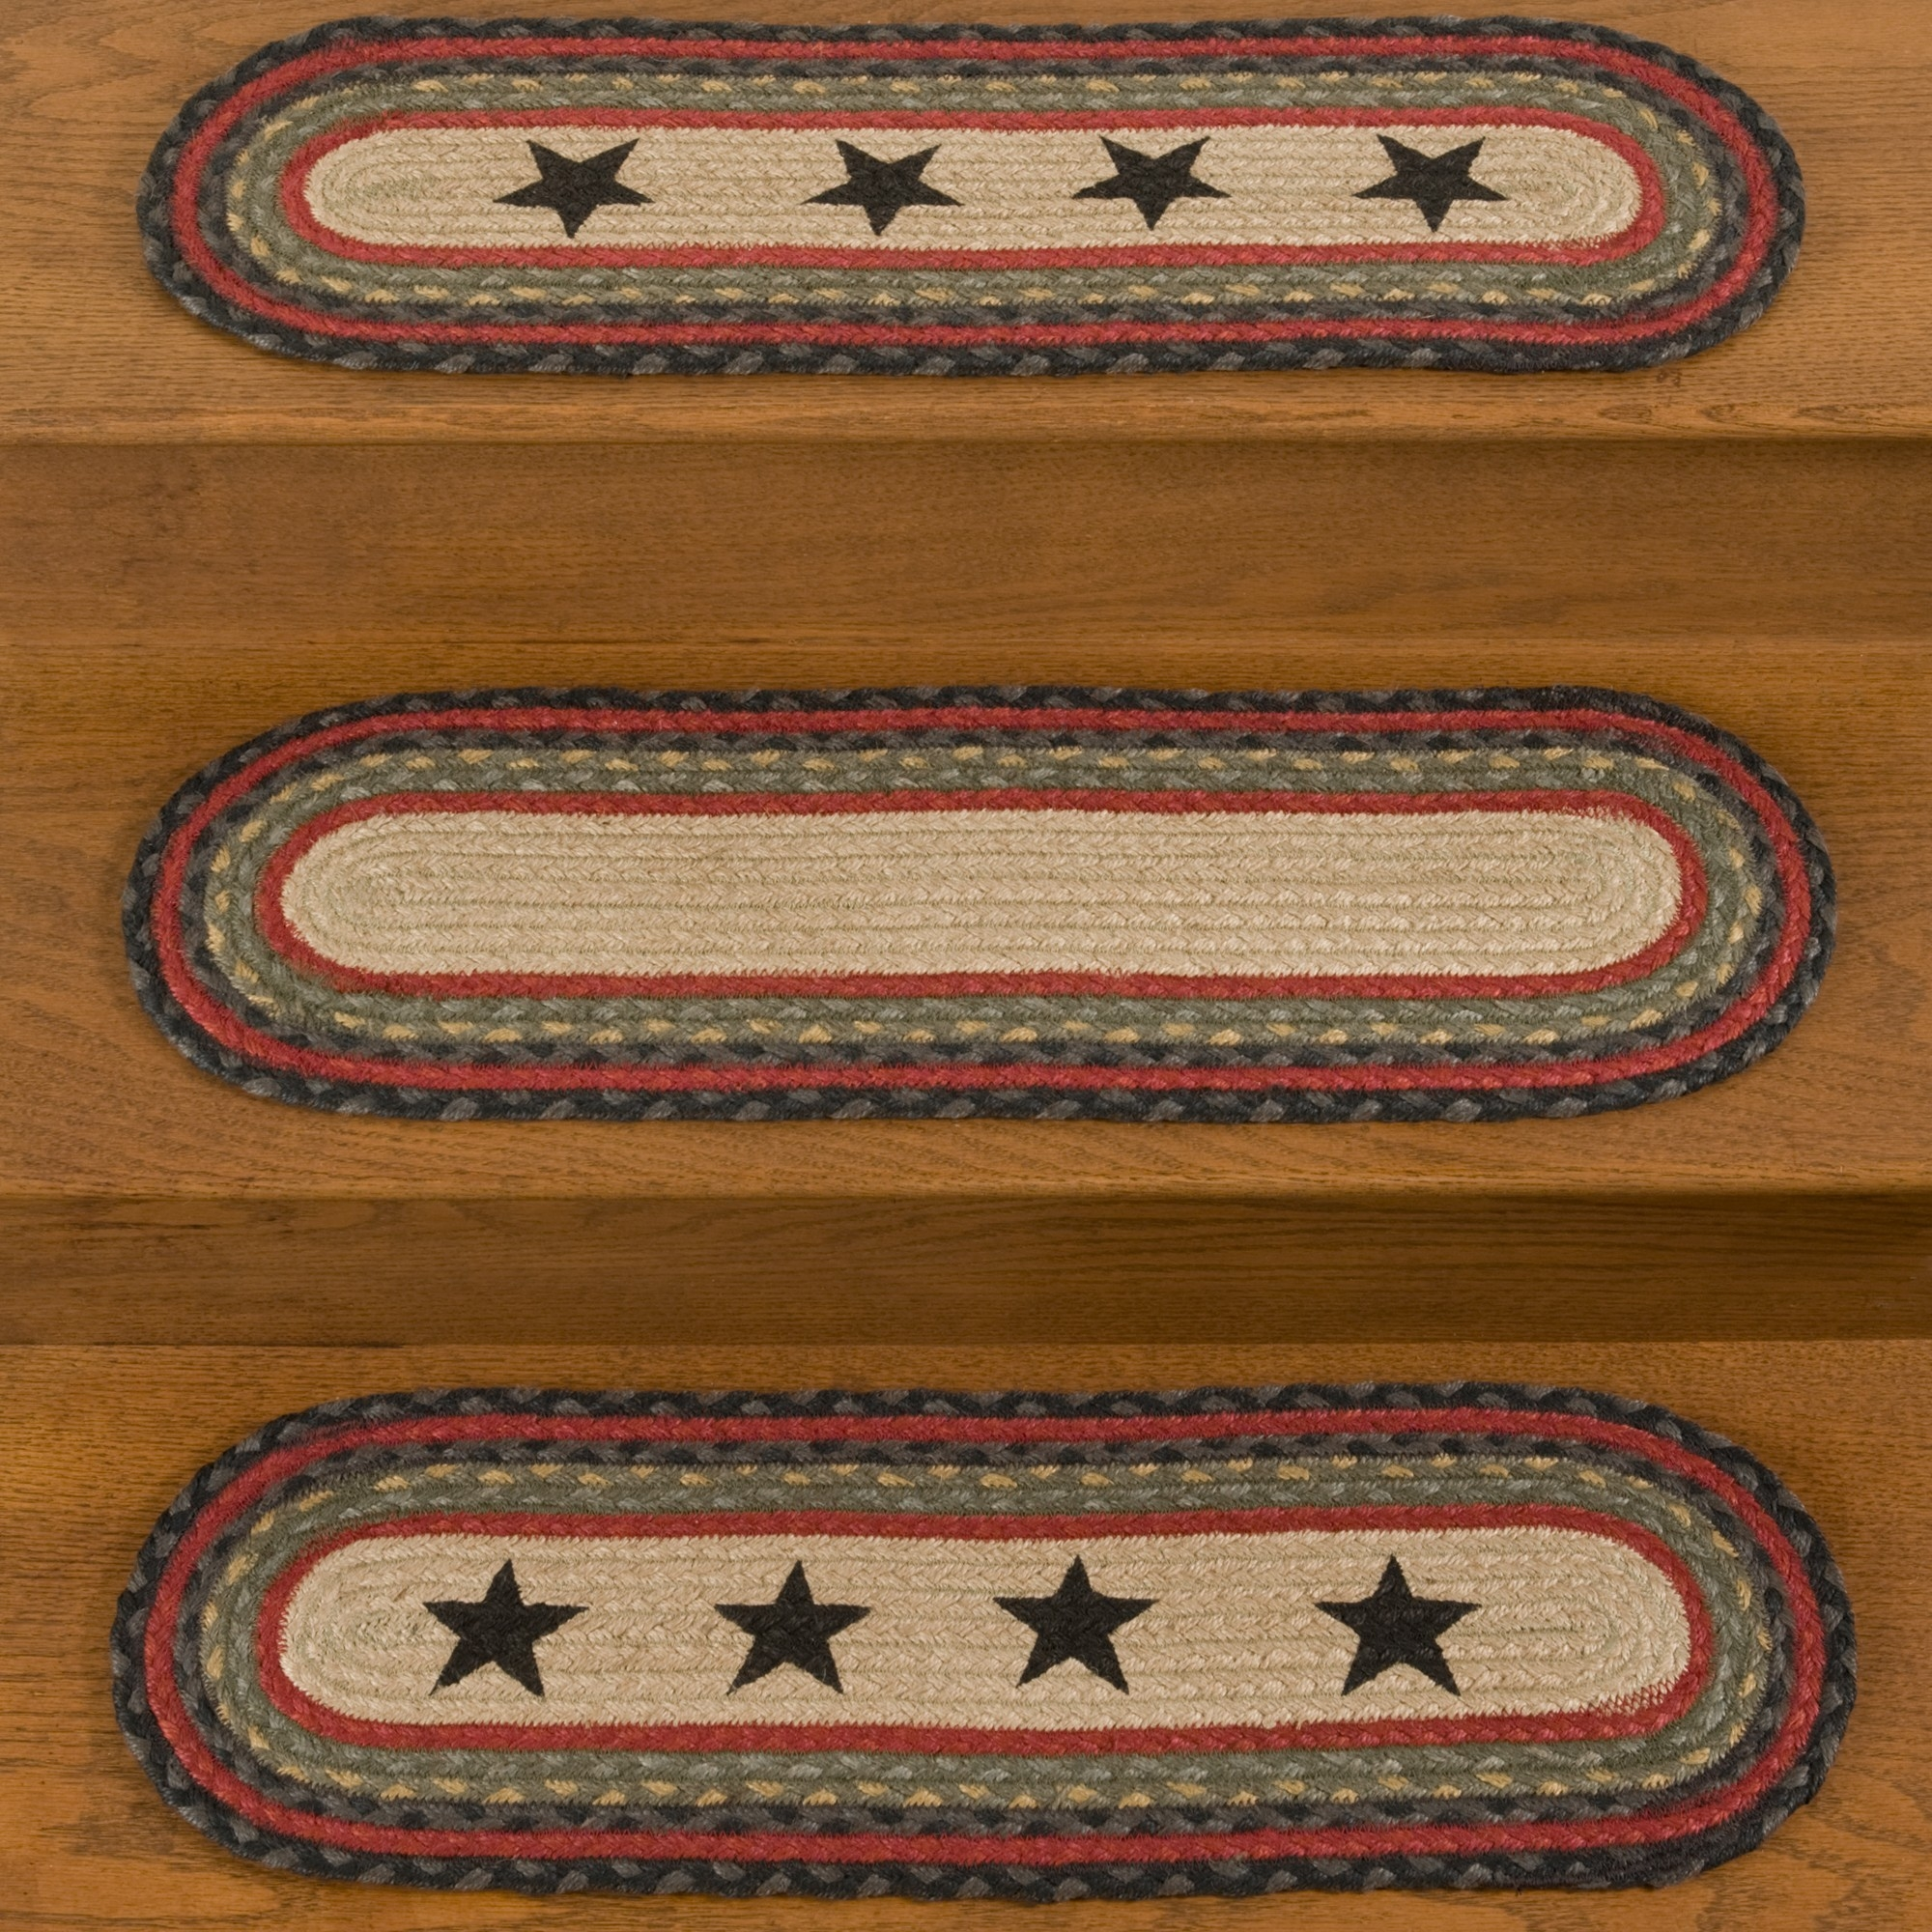 Braided Stair Tread Rugs Roselawnlutheran Intended For Country Stair Tread Rugs (Image 3 of 15)